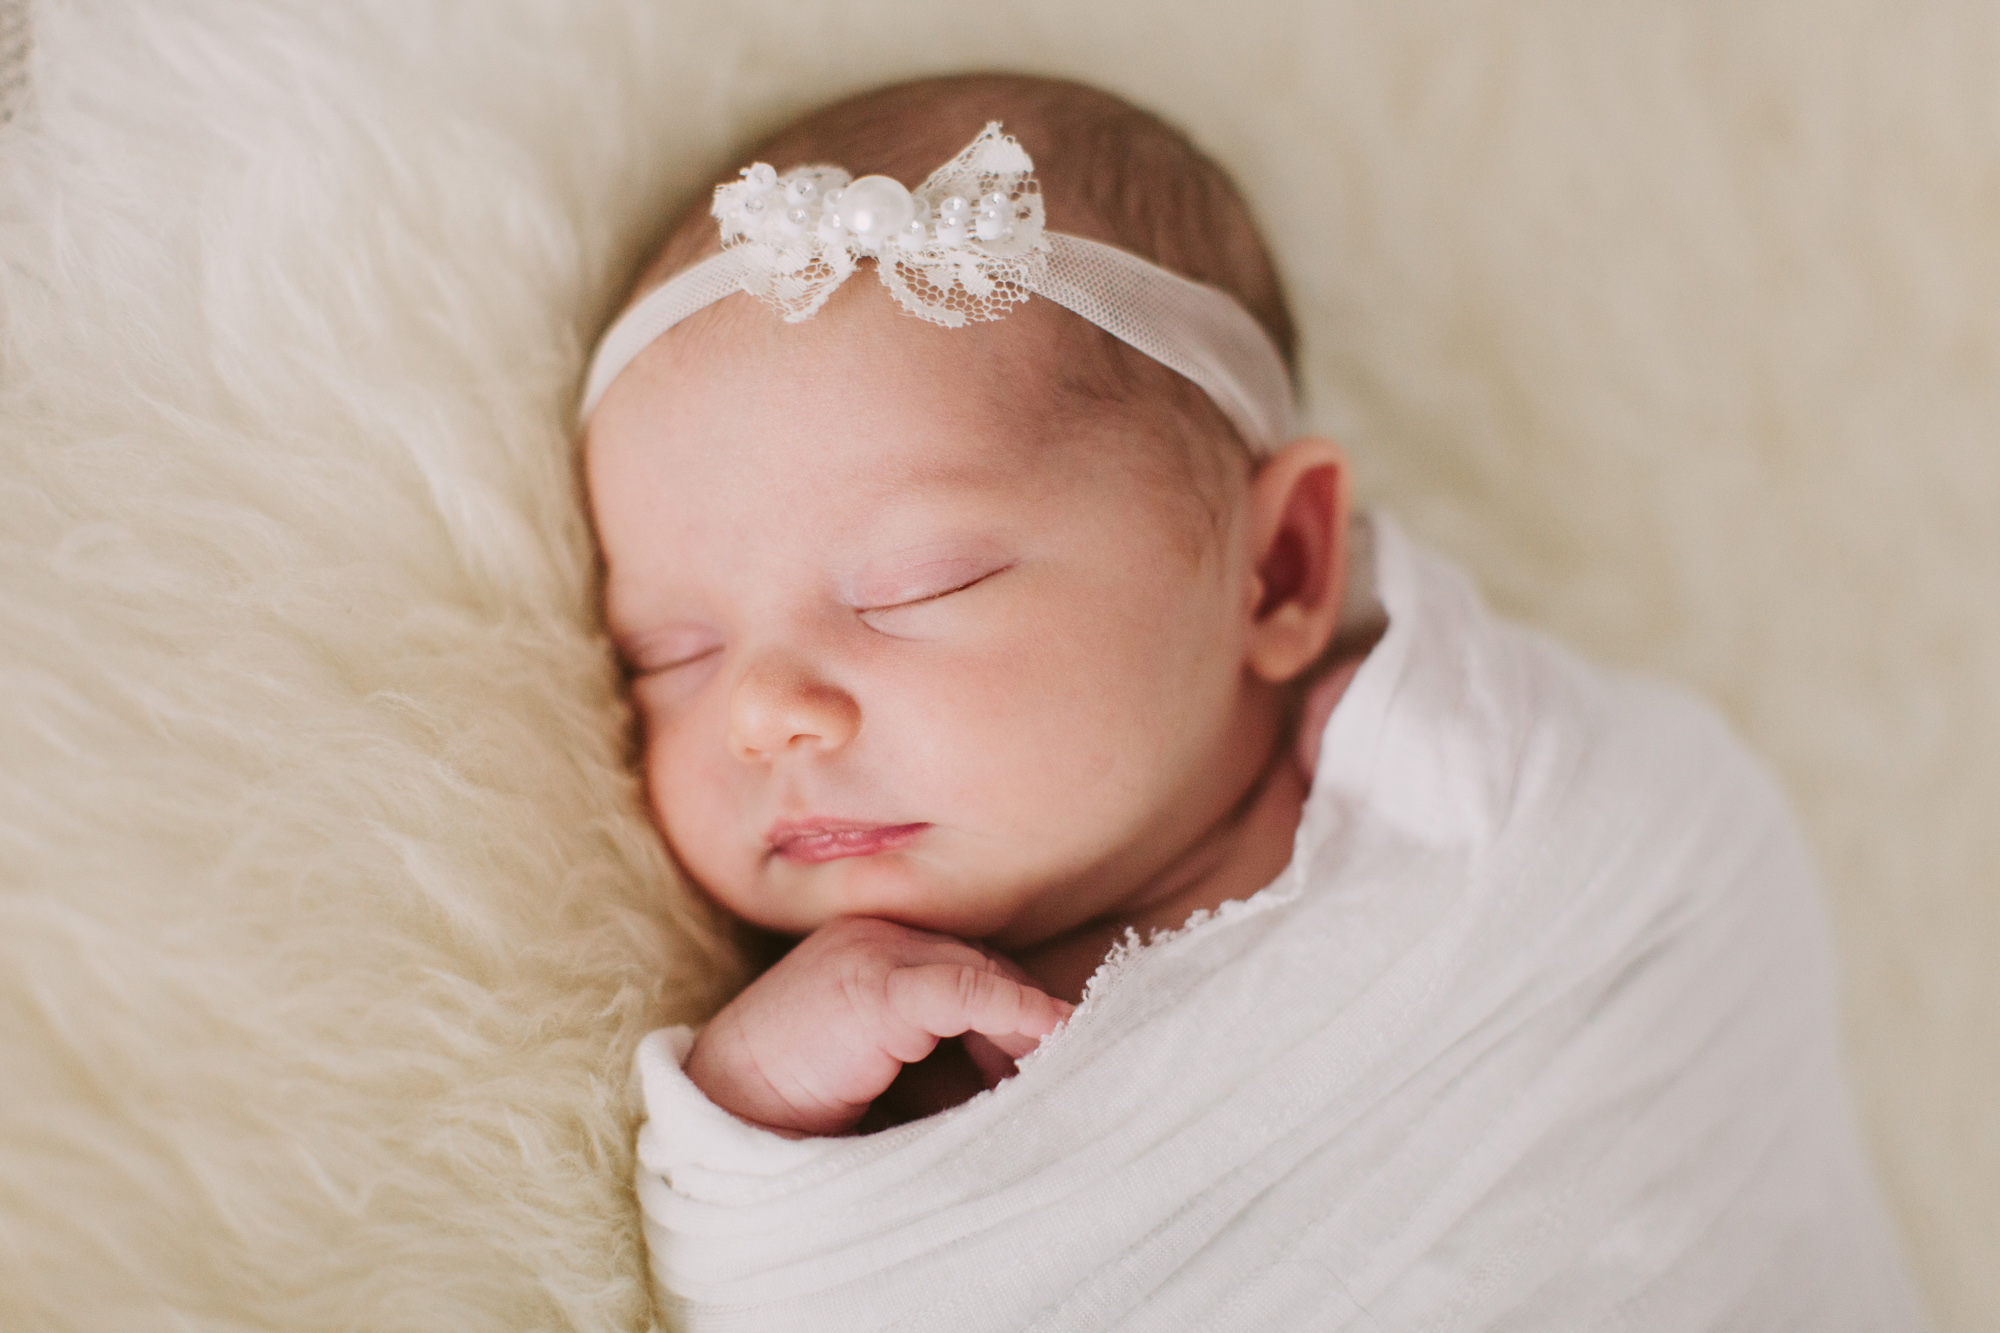 Harper newborn lifestyle ©ten22 studio (35 of 38)